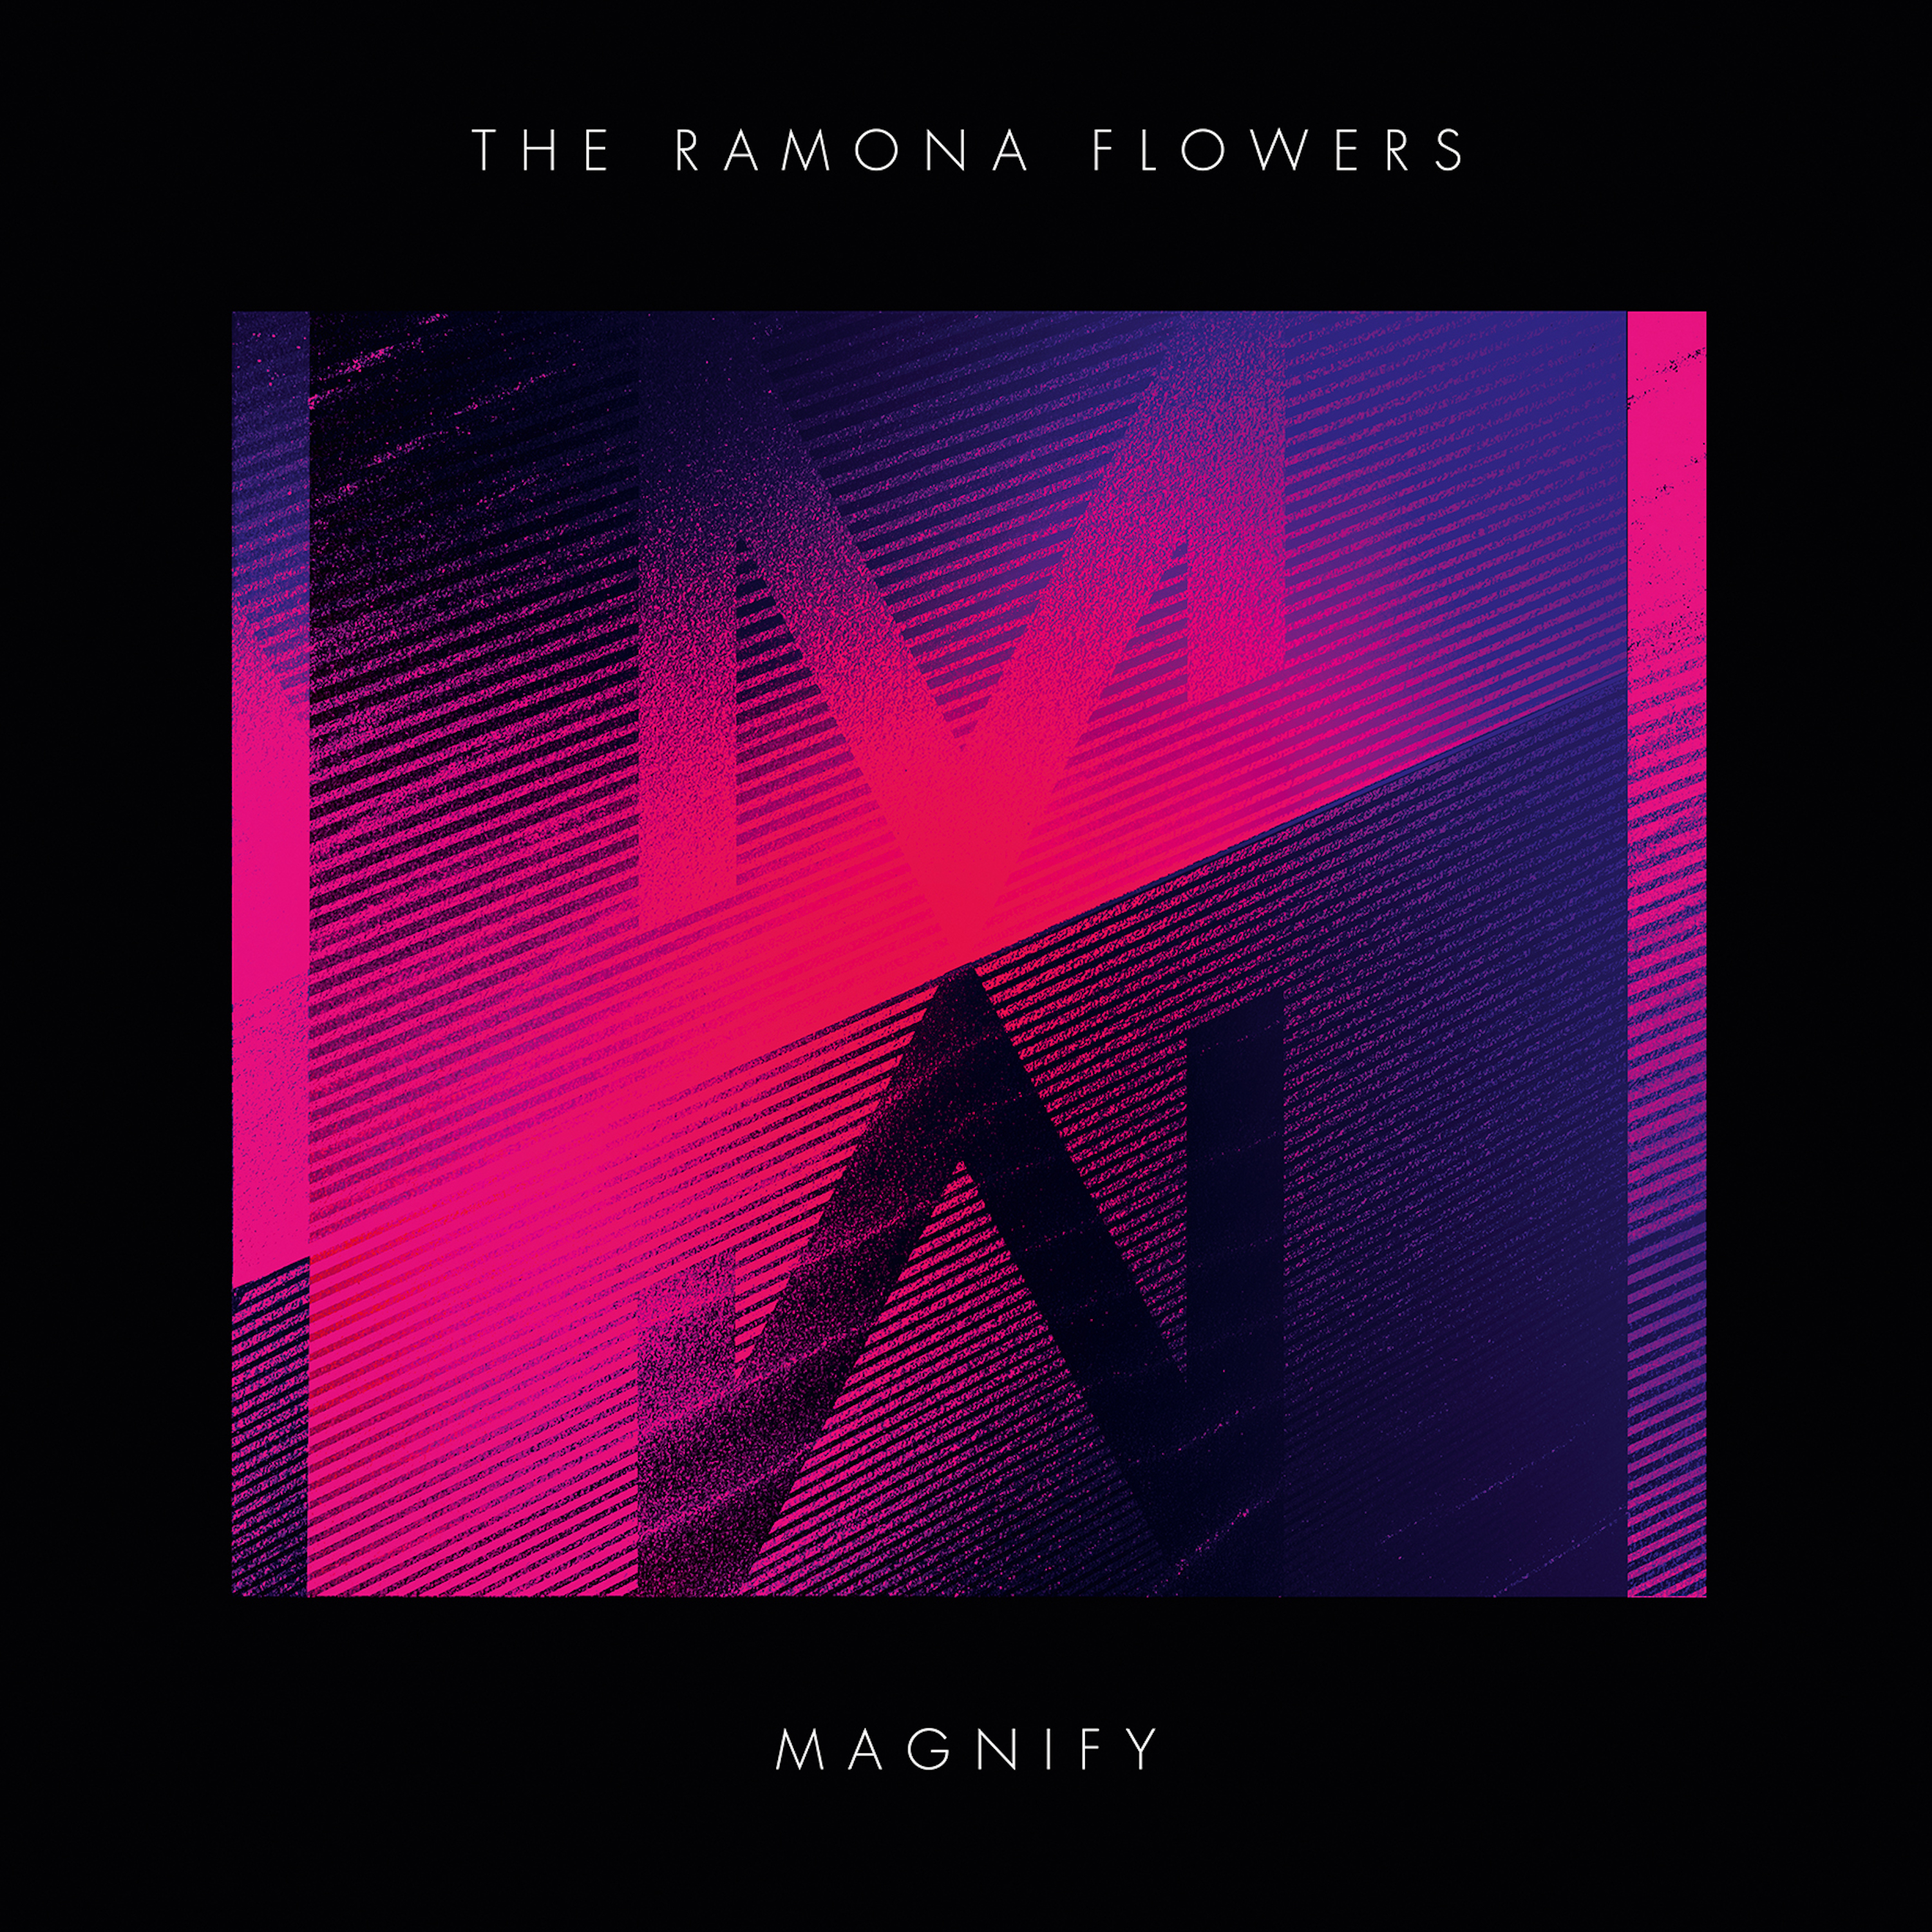 The Ramona Flowers - Magnify